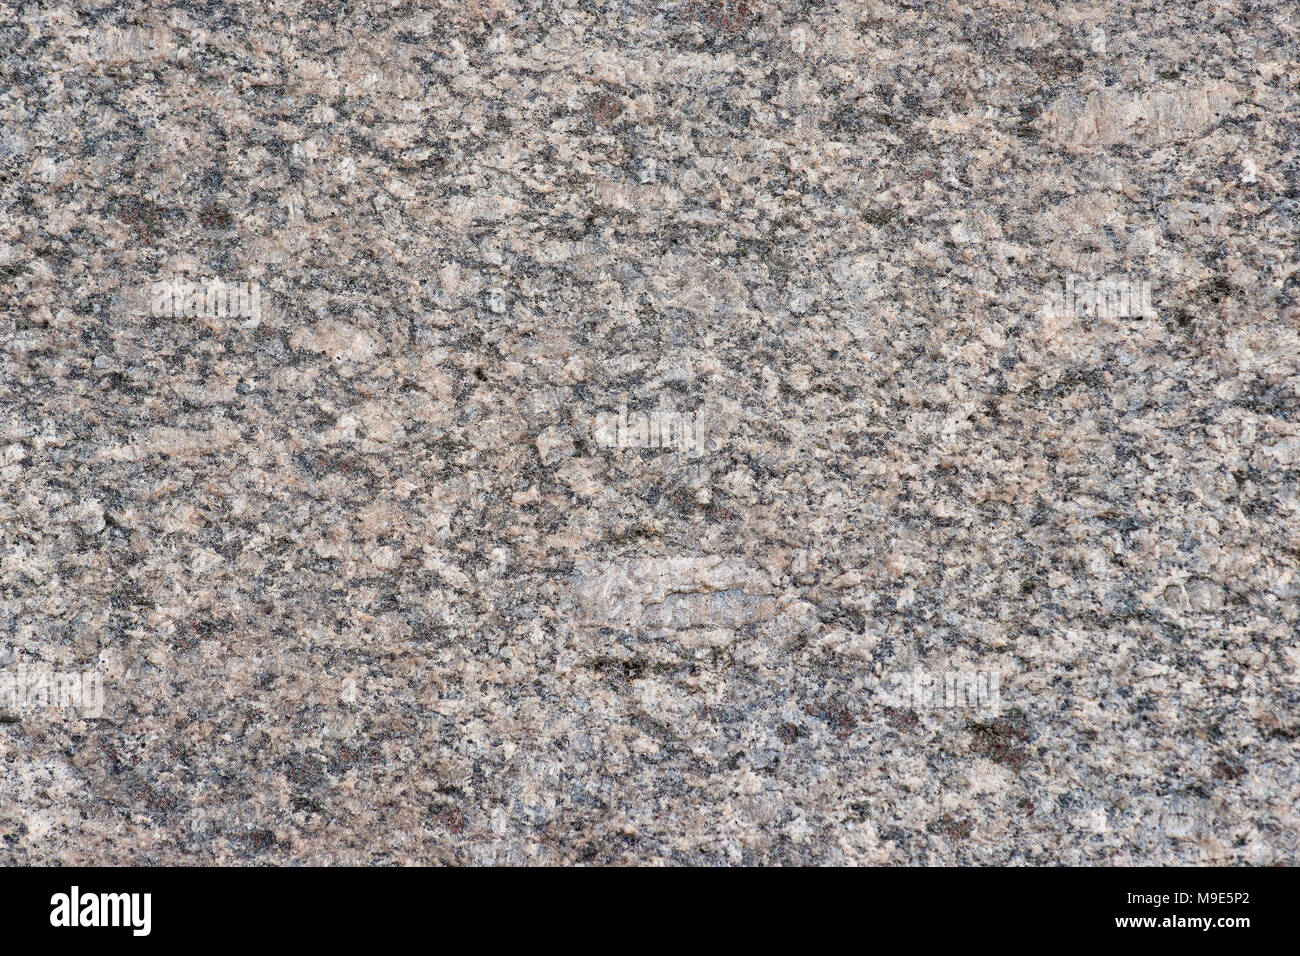 Decorative Granite Stone Rock Background Texture Of Grey Brown